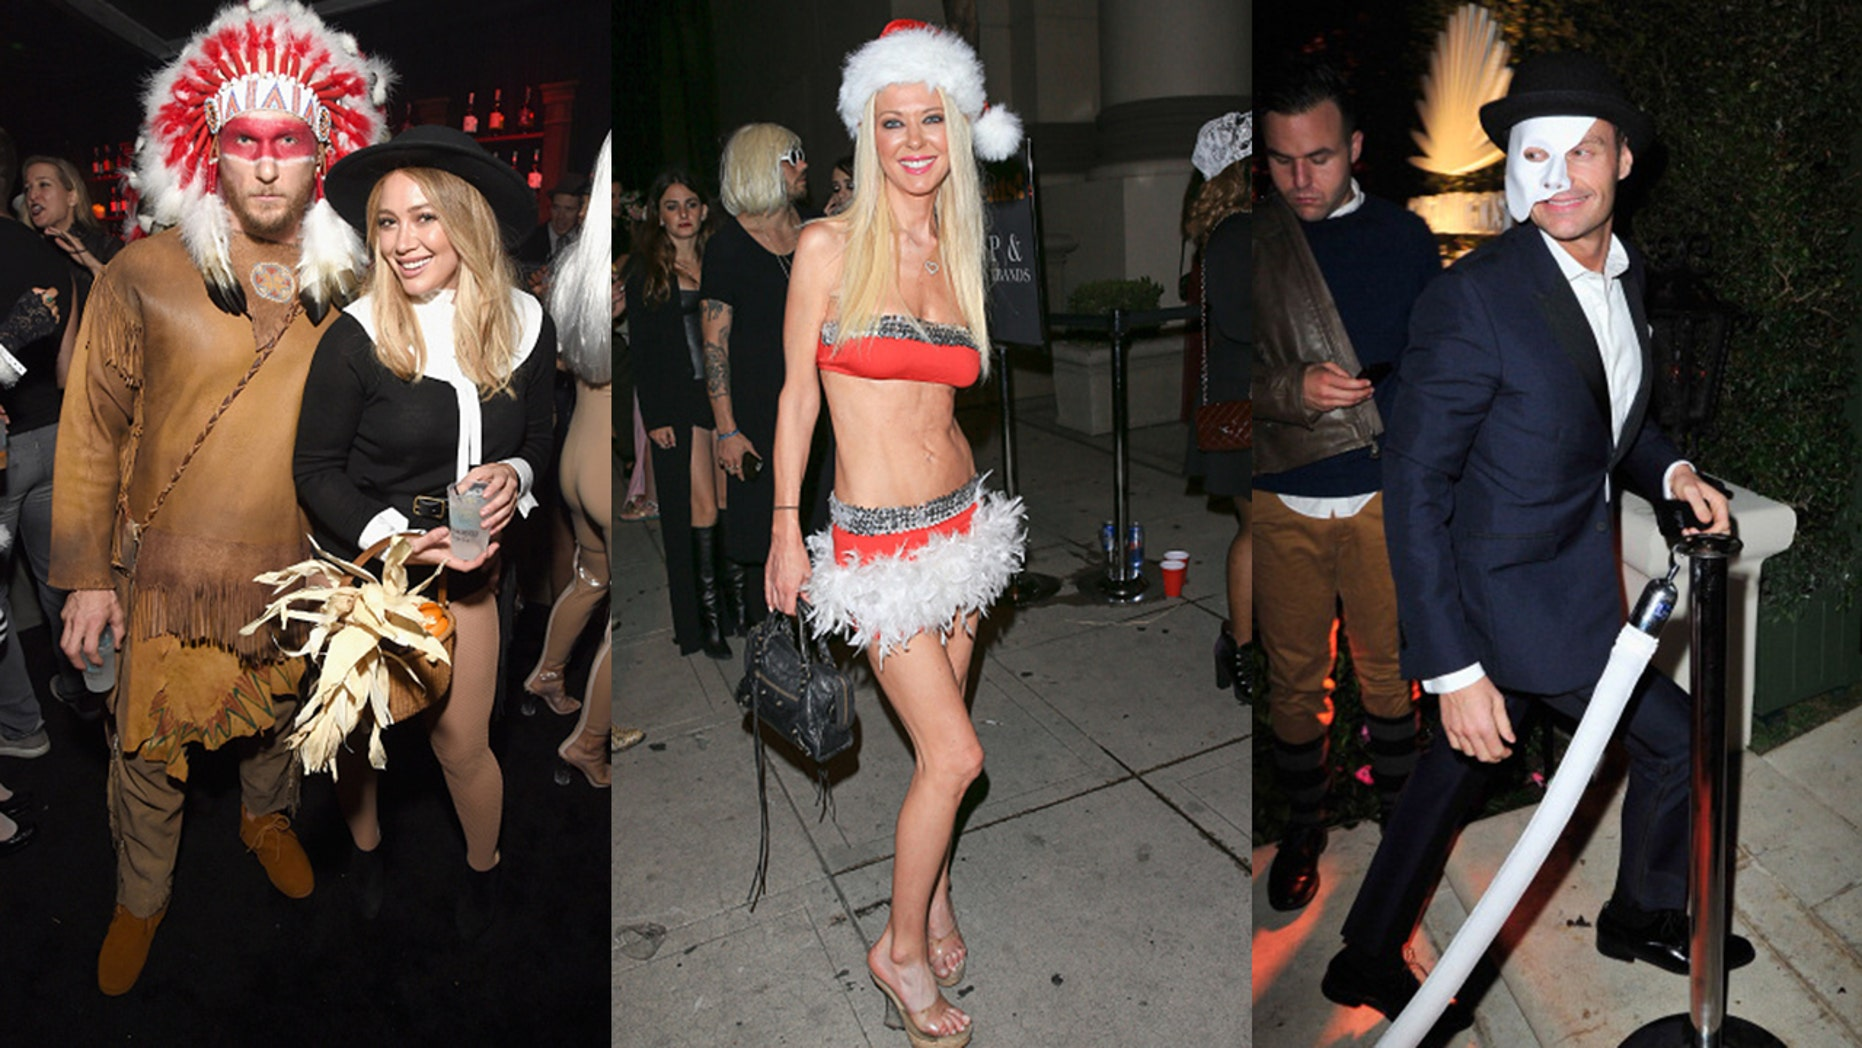 We take a look back at the worst famous Halloween costumes.